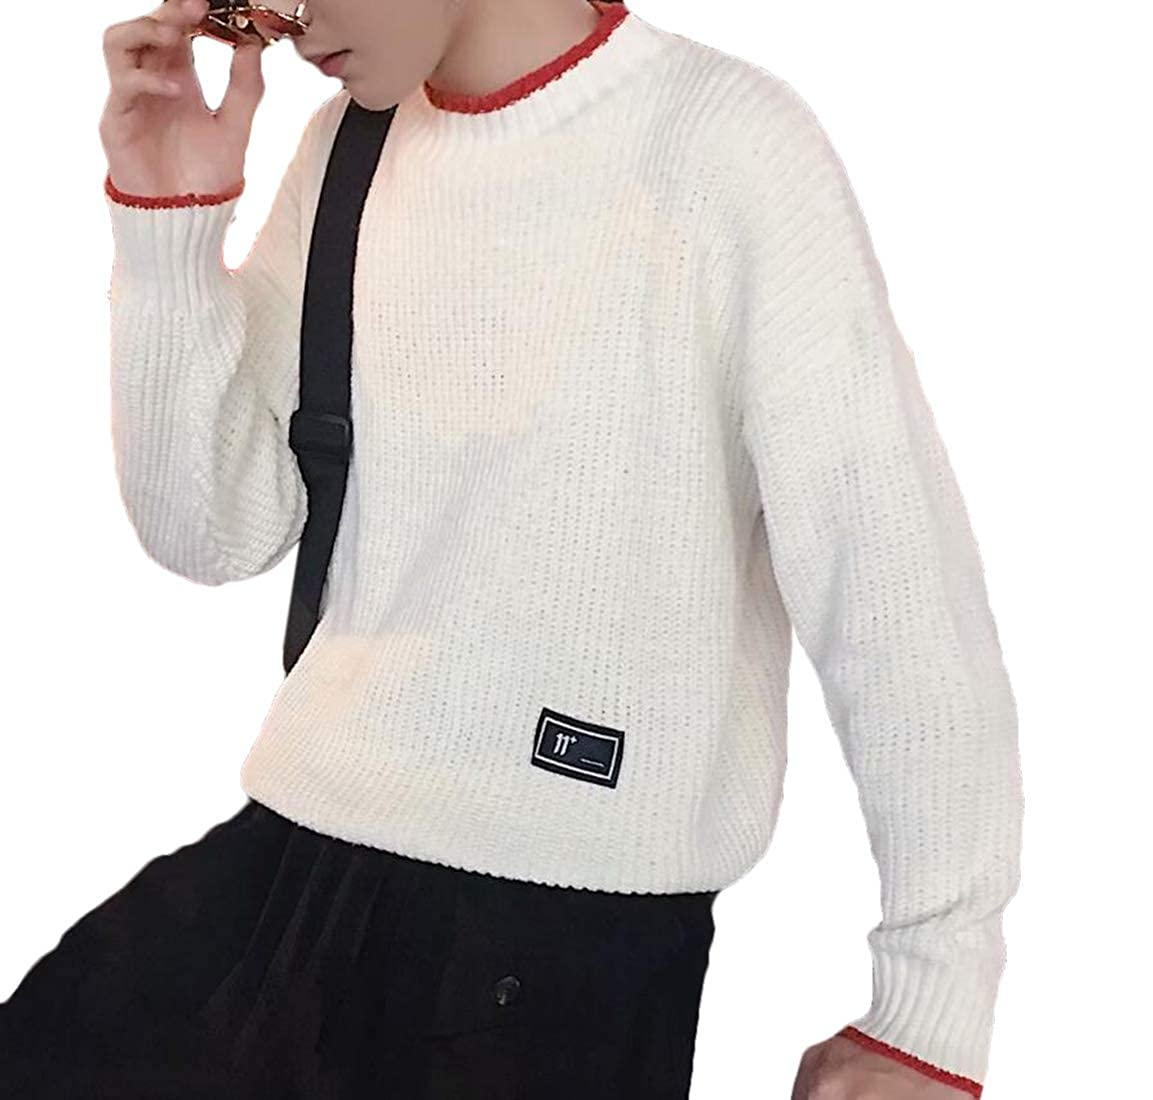 omniscient Mens Tops Casual Slim Fit Pullover Knitted Mock Neck Long Sleeve Sweaters